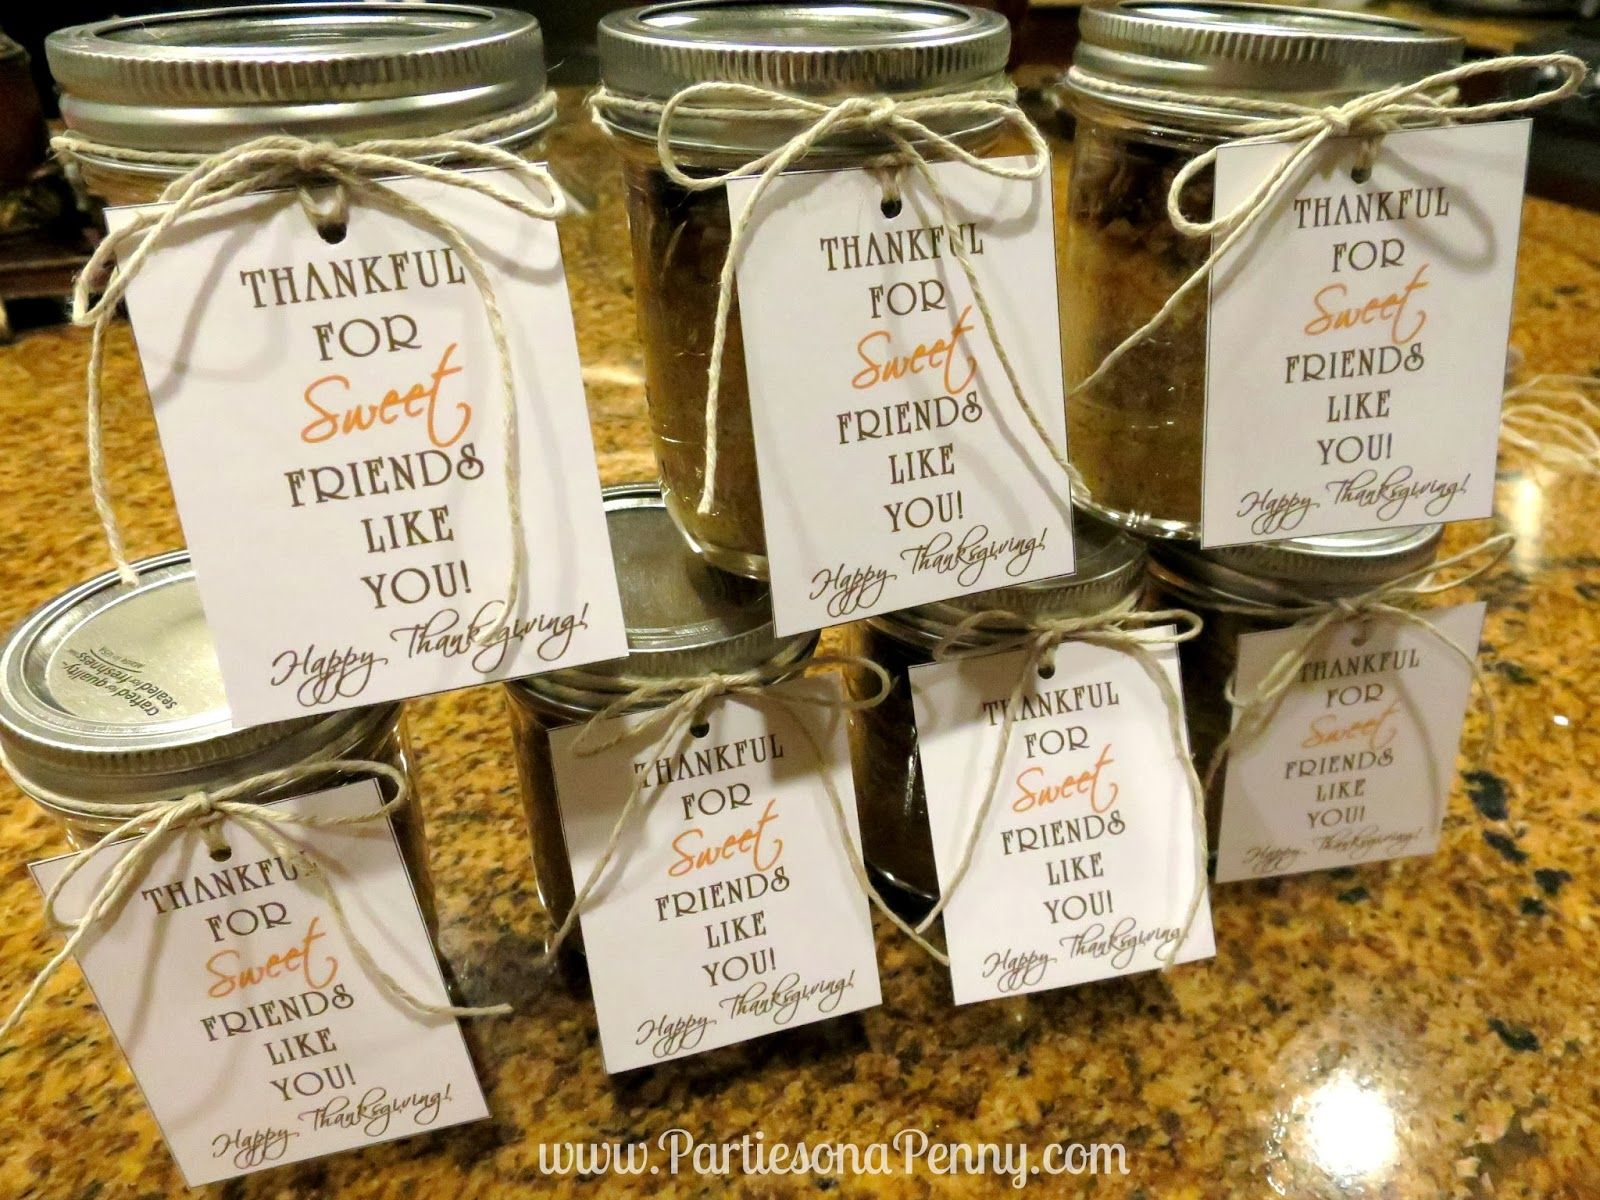 Parties On A Penny Pumpkin Pecan Pie in a Jar Thanksgiving Gift